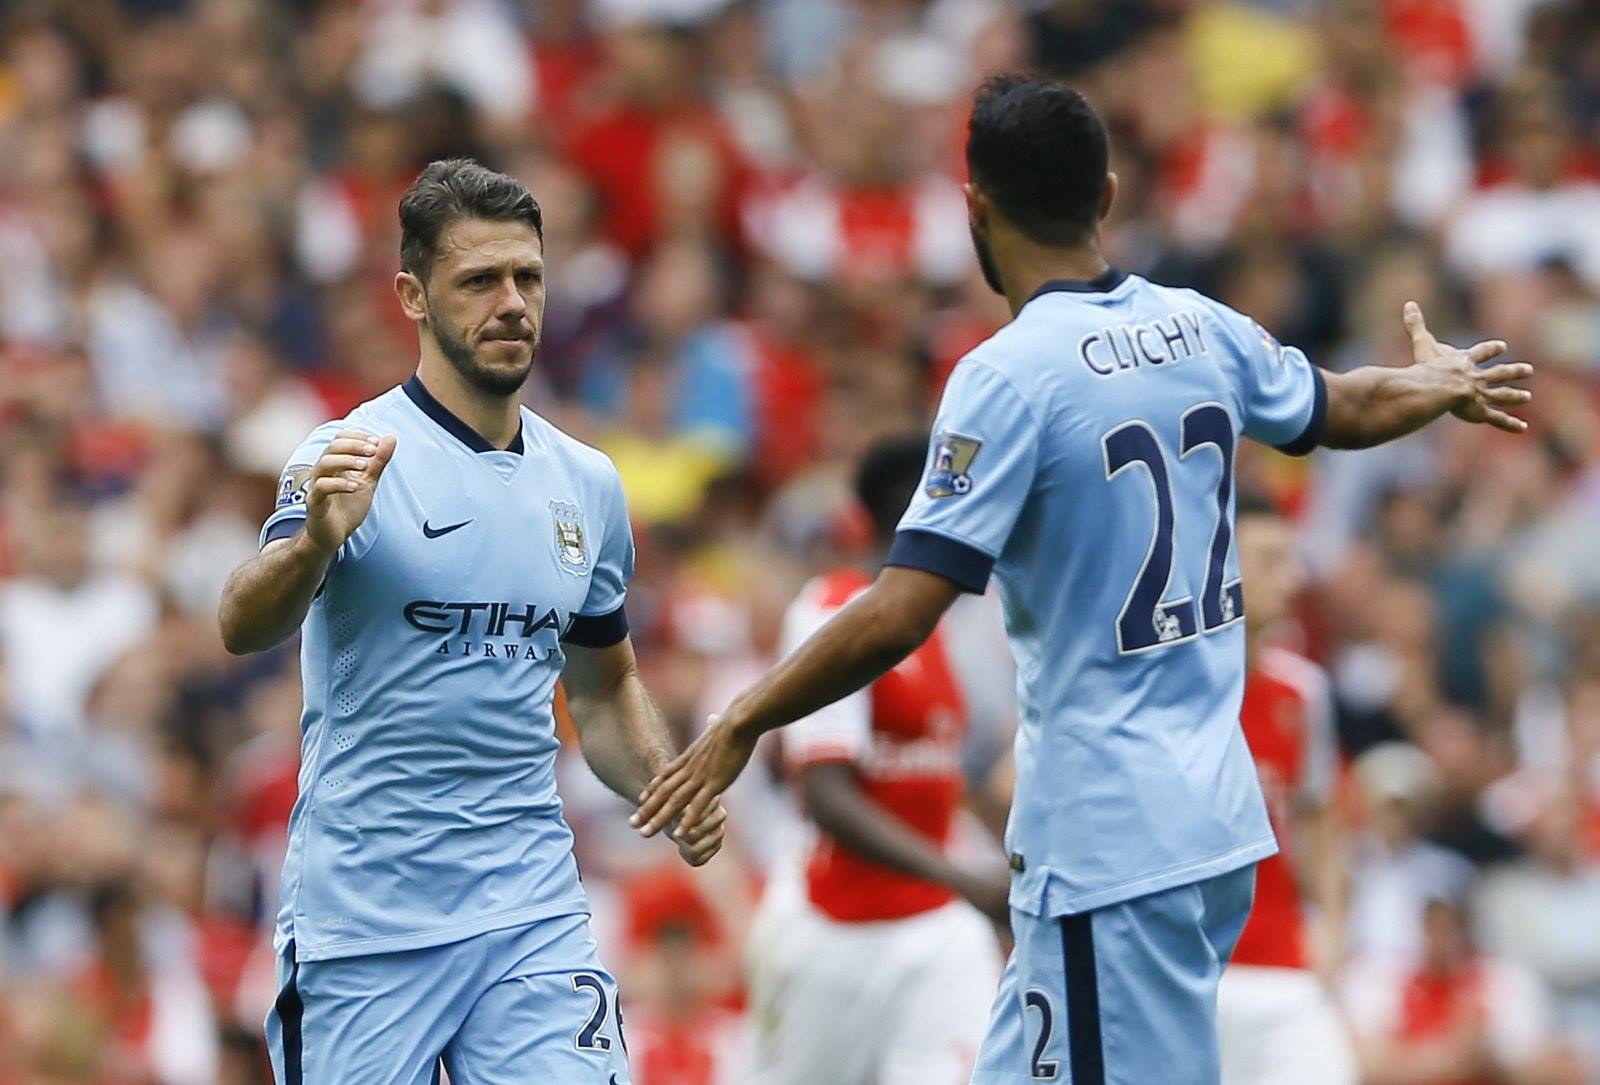 Rare event - Martin Demichelis was the last City player to score from corner...in September 2014!Courtesy@MCFC